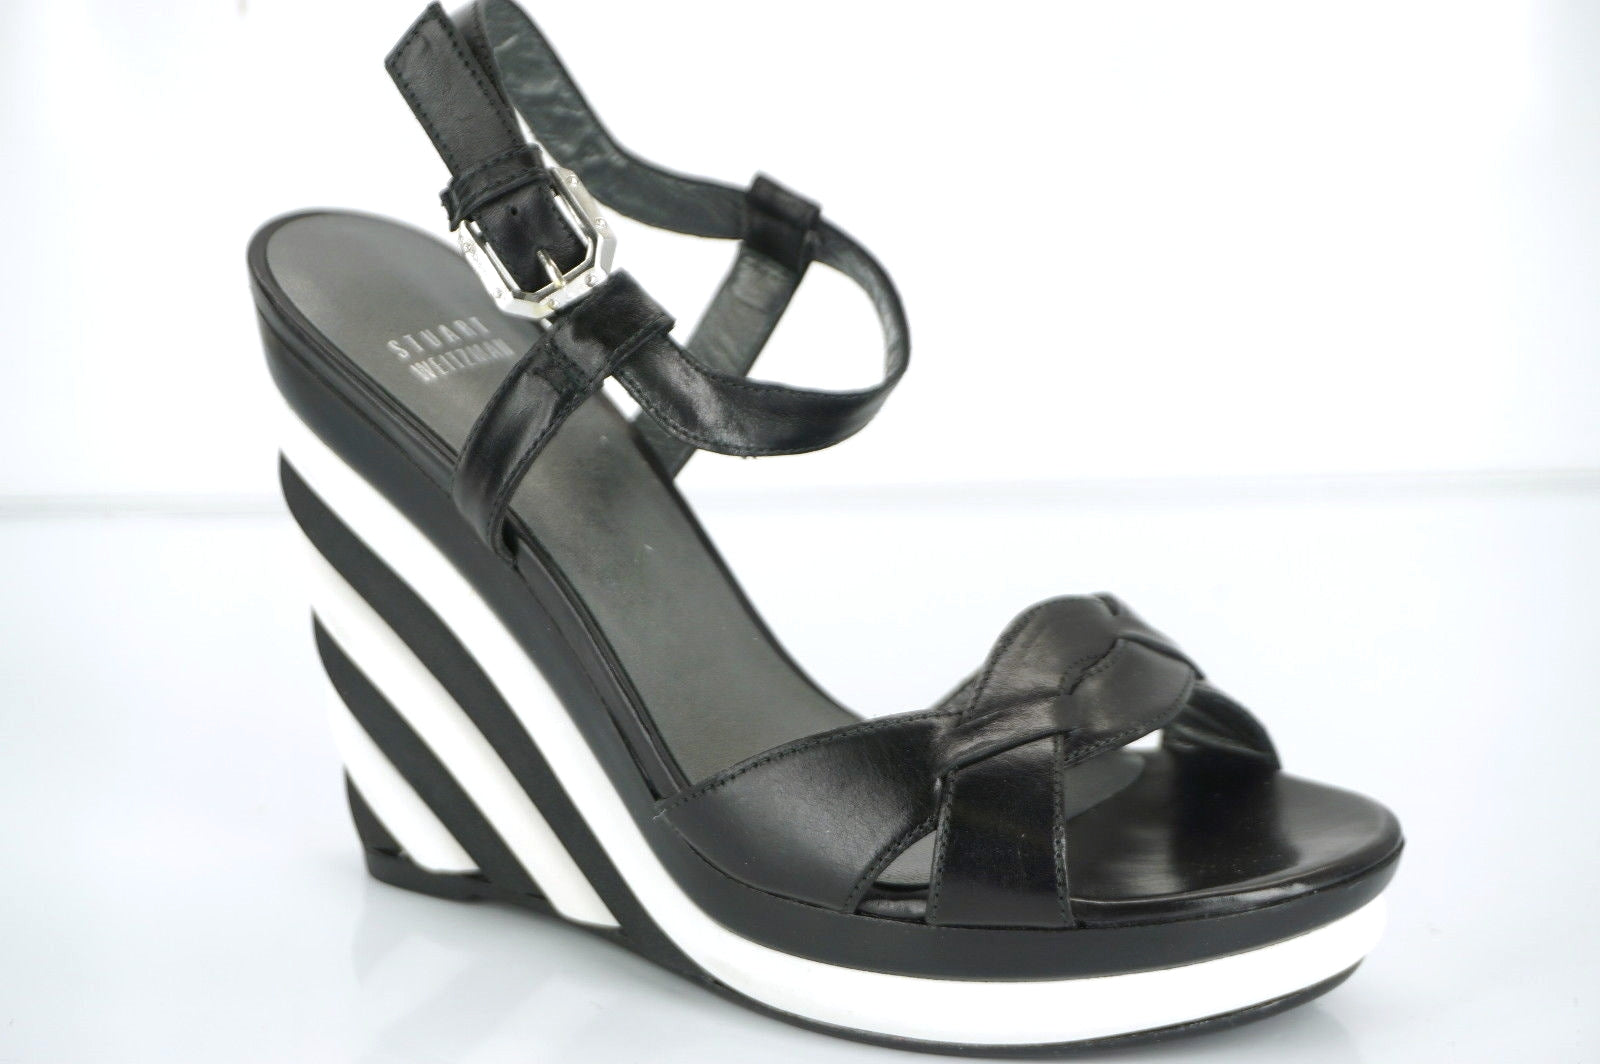 Stuart Weitzman Attitude Black White Striped Wedge Ankle Sandals Size 8 New $425